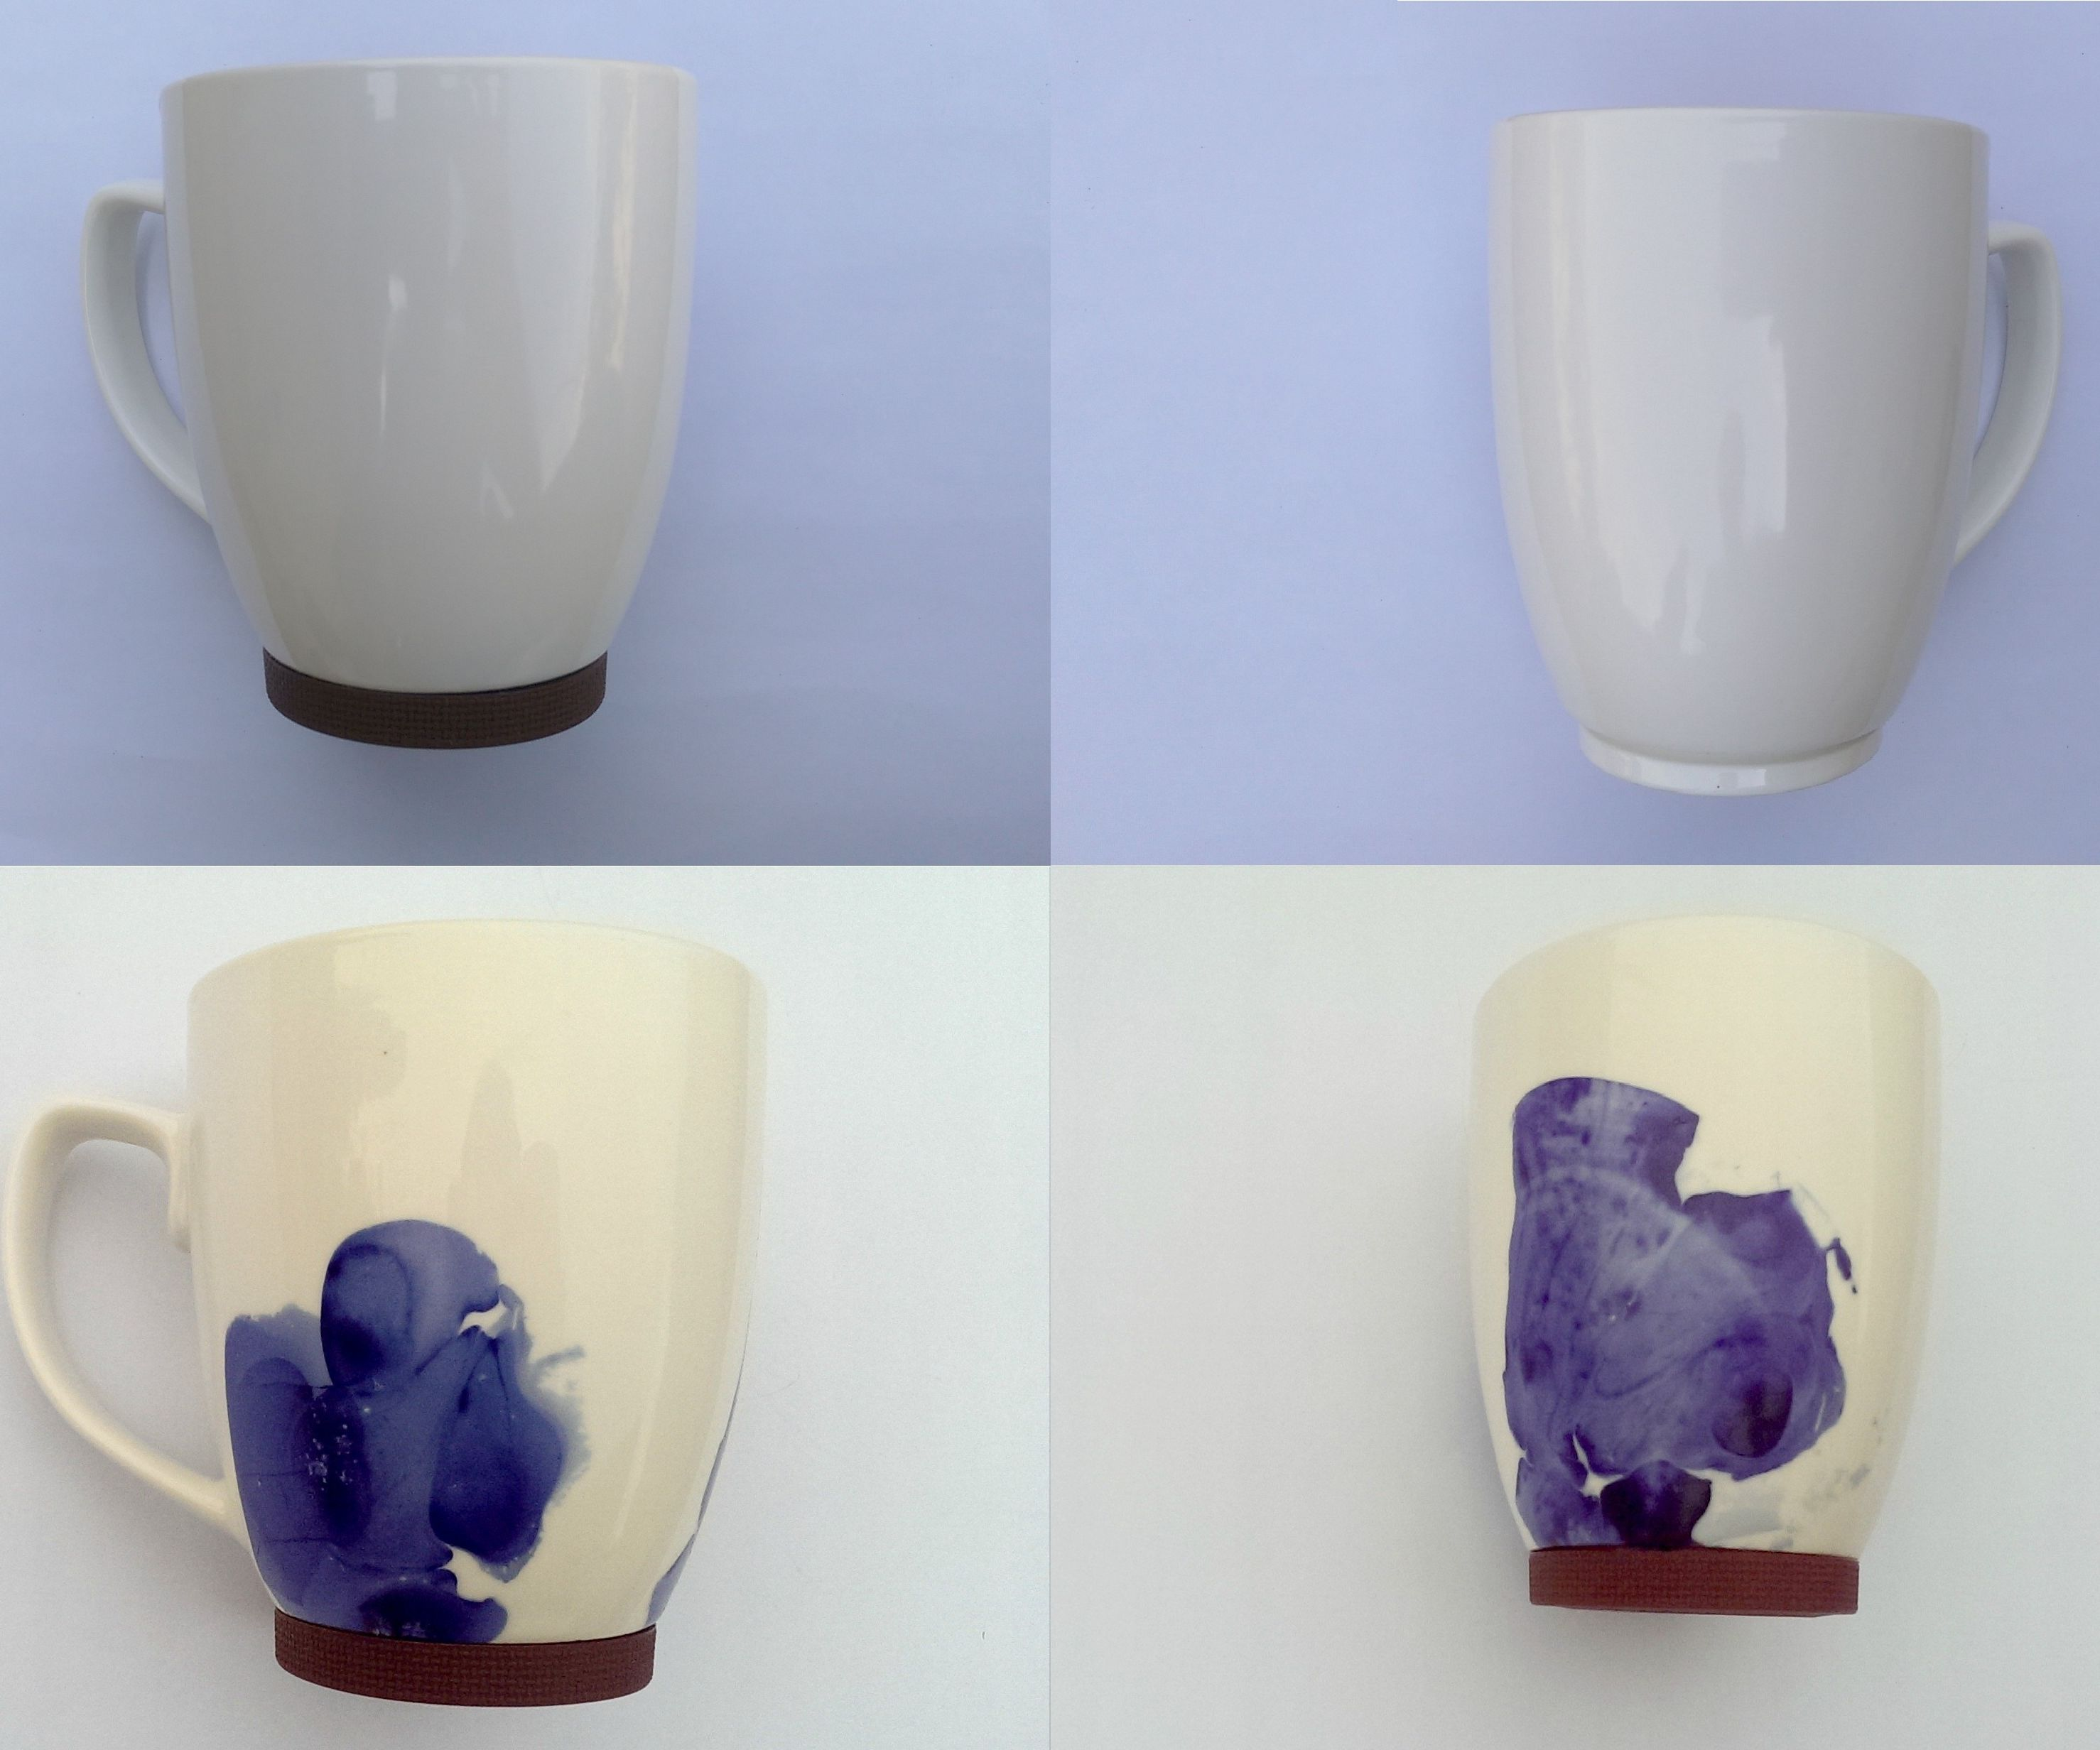 Abstract Designs On Coffee Mugs Using Nail Polish 6 Steps With Pictures Instructables